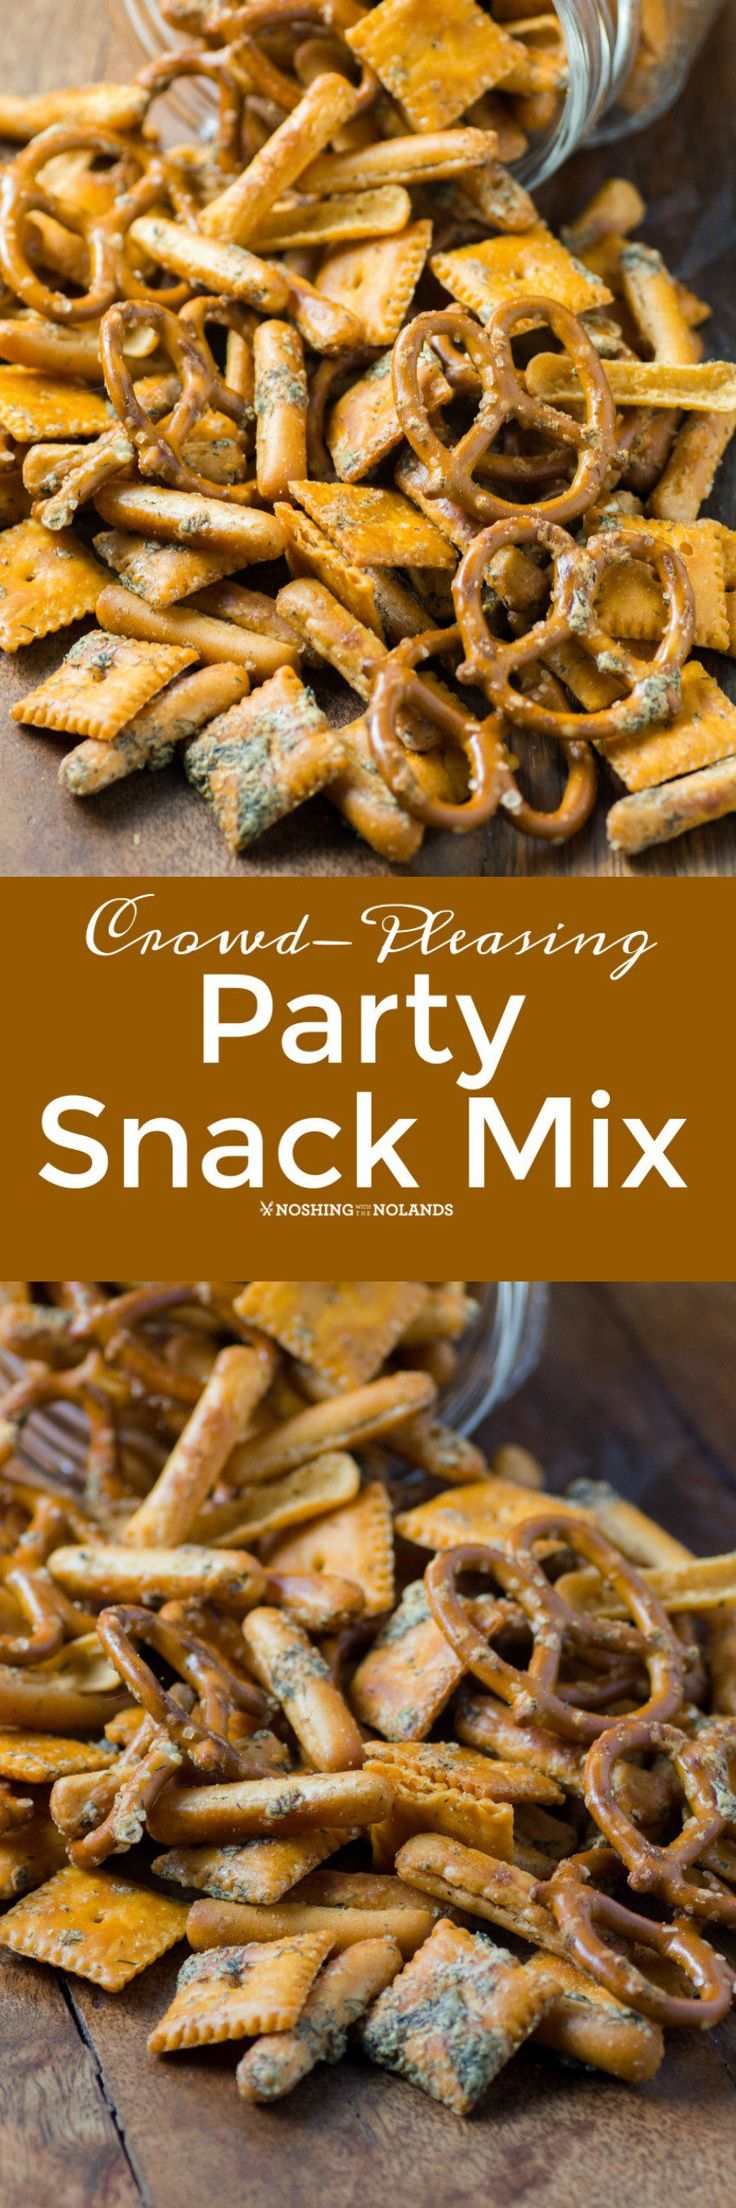 Crowd-Pleasing Party Snack Mix Do you get stumped into what munchies to put out for a crowd? Maybe it is game day or a holiday party. You want something more than chips and nuts but what? This Crowd-Pleasing Party Snack Mix recipe will come in very handy. It is easy to make and even freezes...Read More »